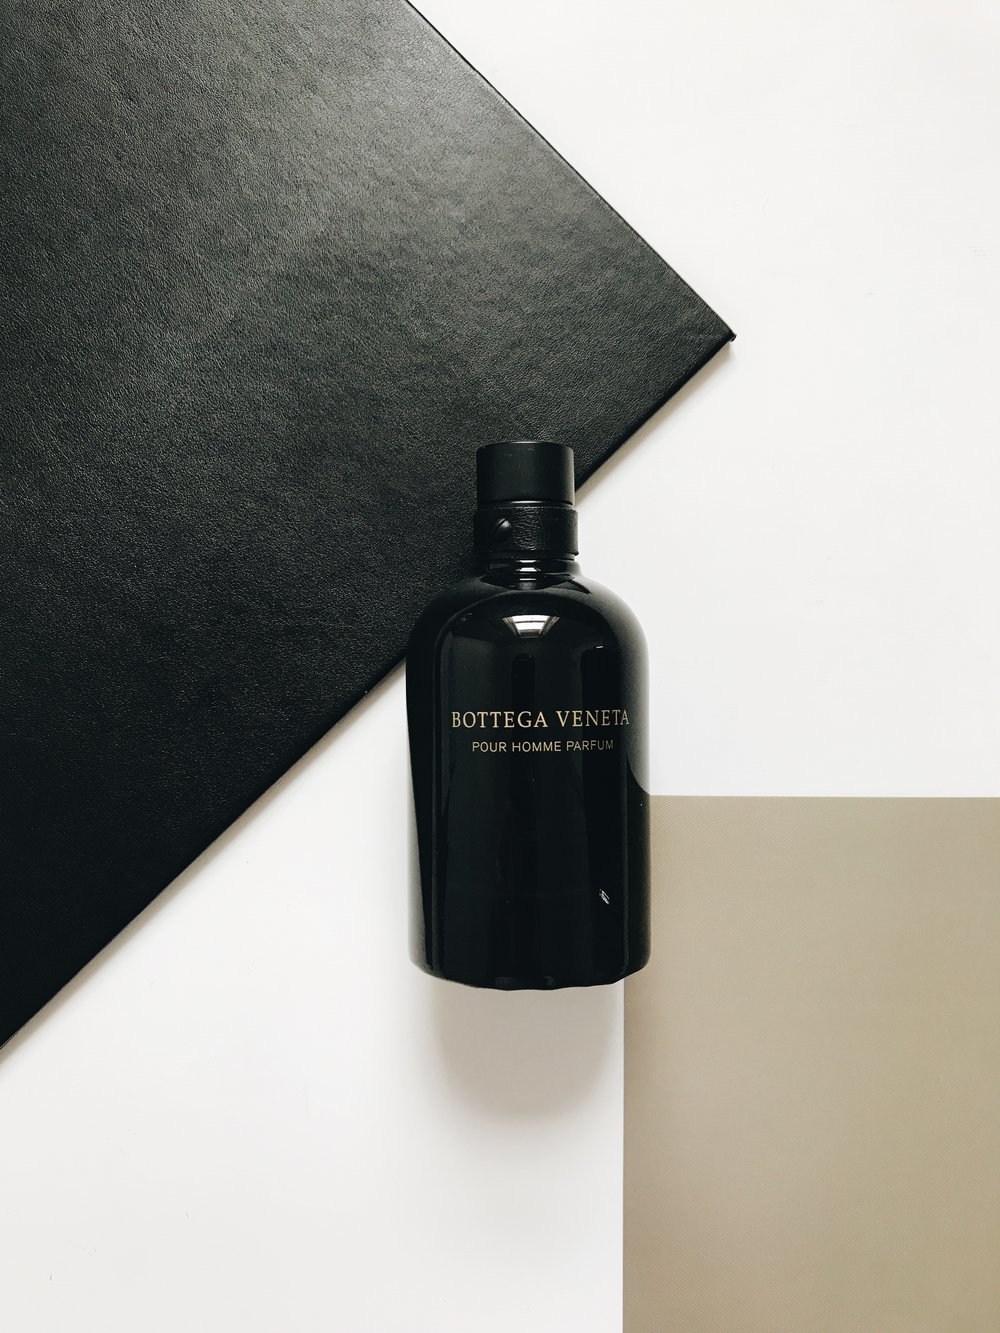 BOTTEGA VENETA POUR HOMME PARFUM - Top Notes: Calabrian Bergamot, Siberian Pine, JuniperMiddle Notes: Pimento, Canadian Fir, Clary SageBase Notes: Labdanum, Leather, PatchouliSophisticated, bold and classic. The opening begins with a refreshing citrusy feel that very quickly dries down into a woody, earthier type of scent. The Juniper and Siberian Pine notes blend perfectly together and add a real masculine touch!The longevity of Pour Homme lasted for up to 6 hours upon my skin and I feel is definitely worth wearing during a night time as it could be a little overpowering throughout the day. (A little side note, if you like Tom Ford's discontinued Italian Cypress, then you may like this one...)Pour Homme is available to purchase here.